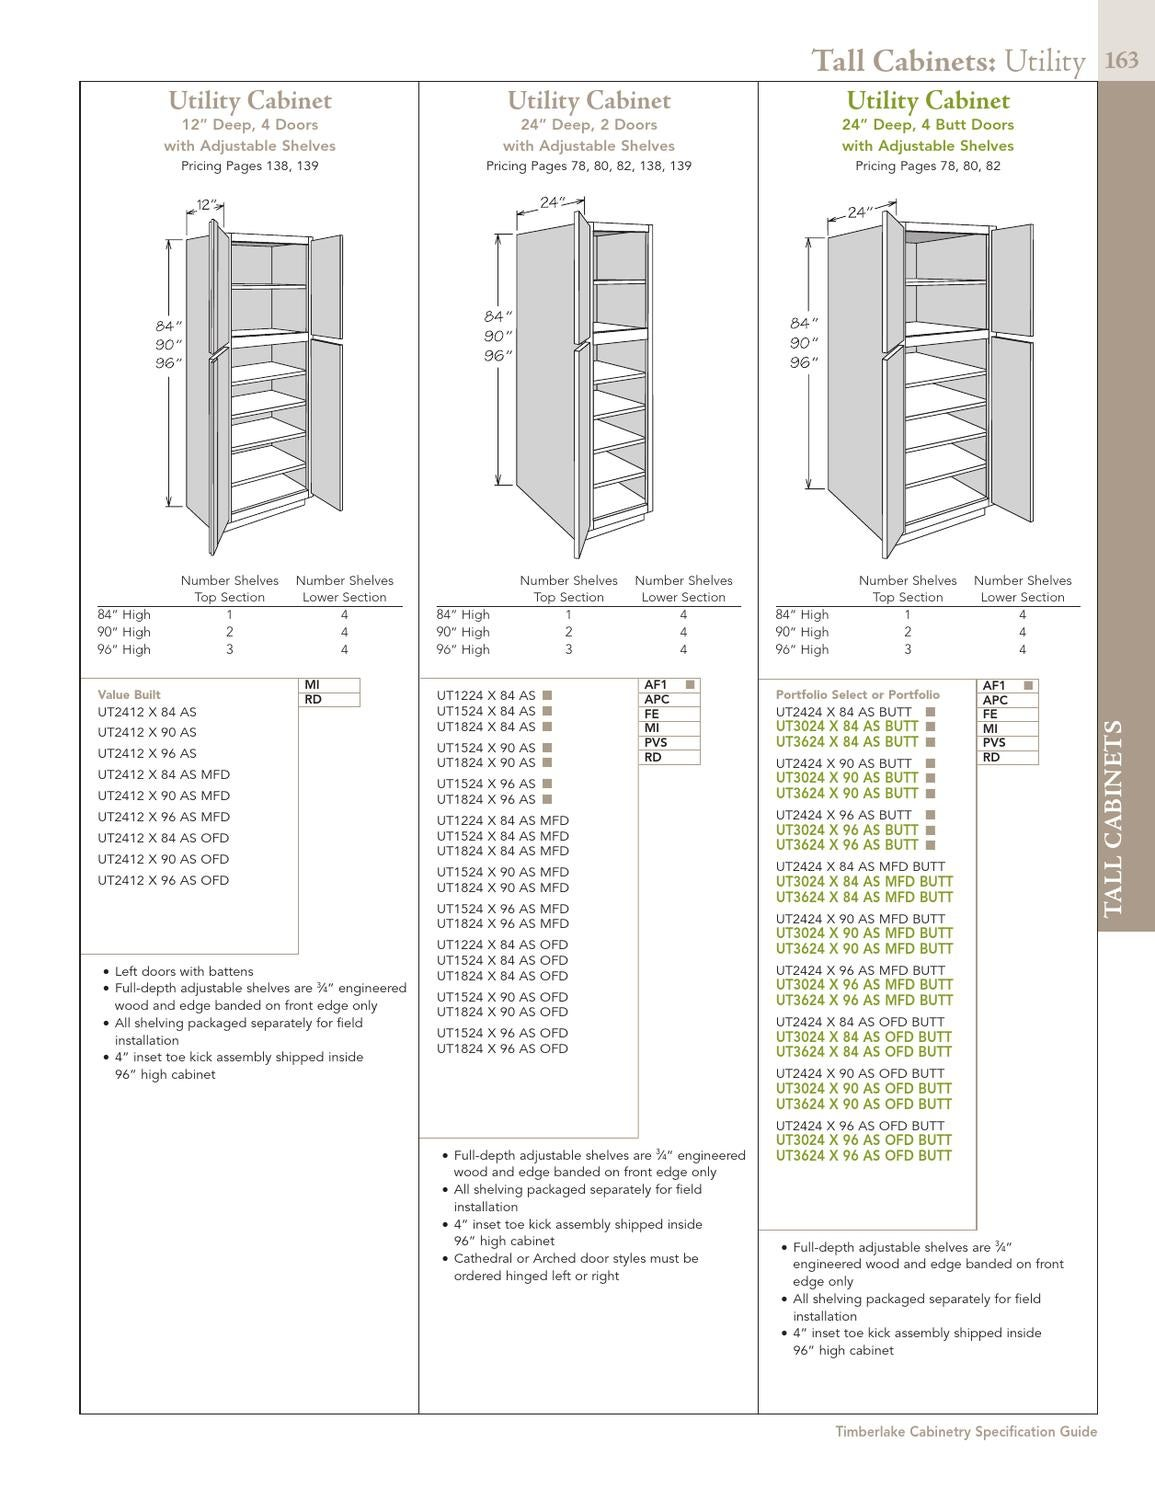 Toe Kick Depth : depth, Specification, Guide, Timberlake, Cabinetry, Issuu